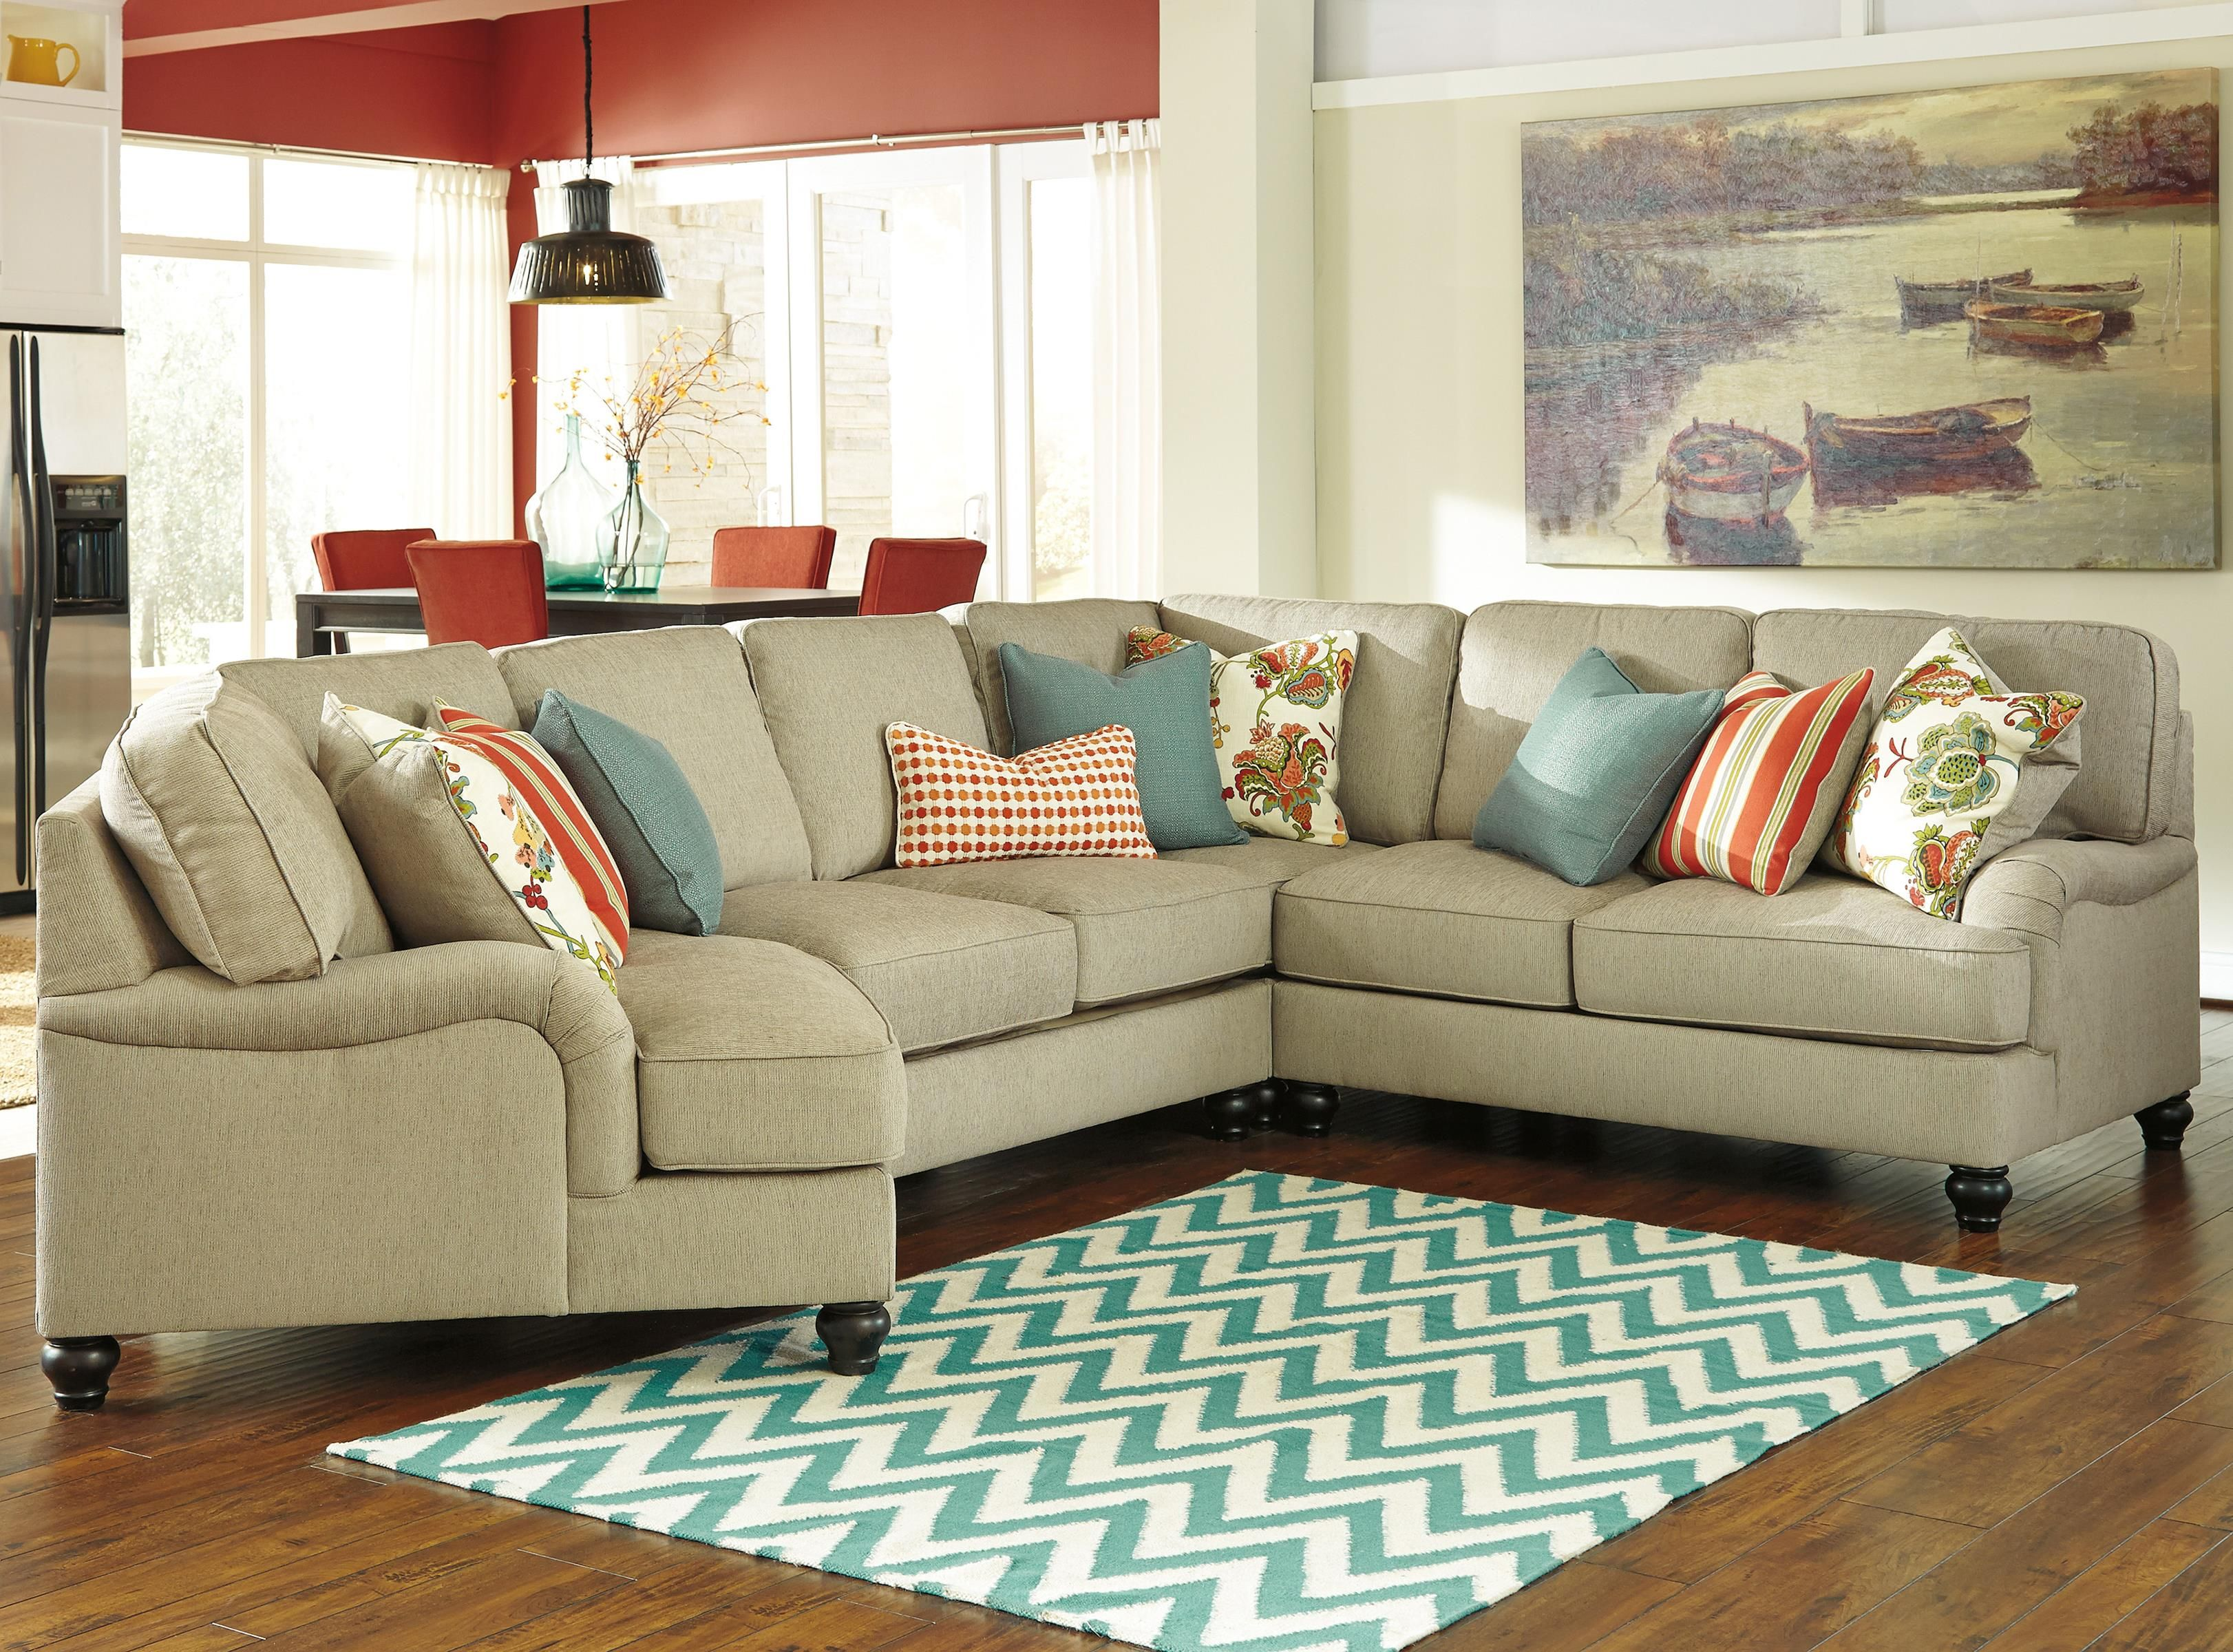 Kerridon 4 Piece Sectional with Left Cuddler by Benchcraft